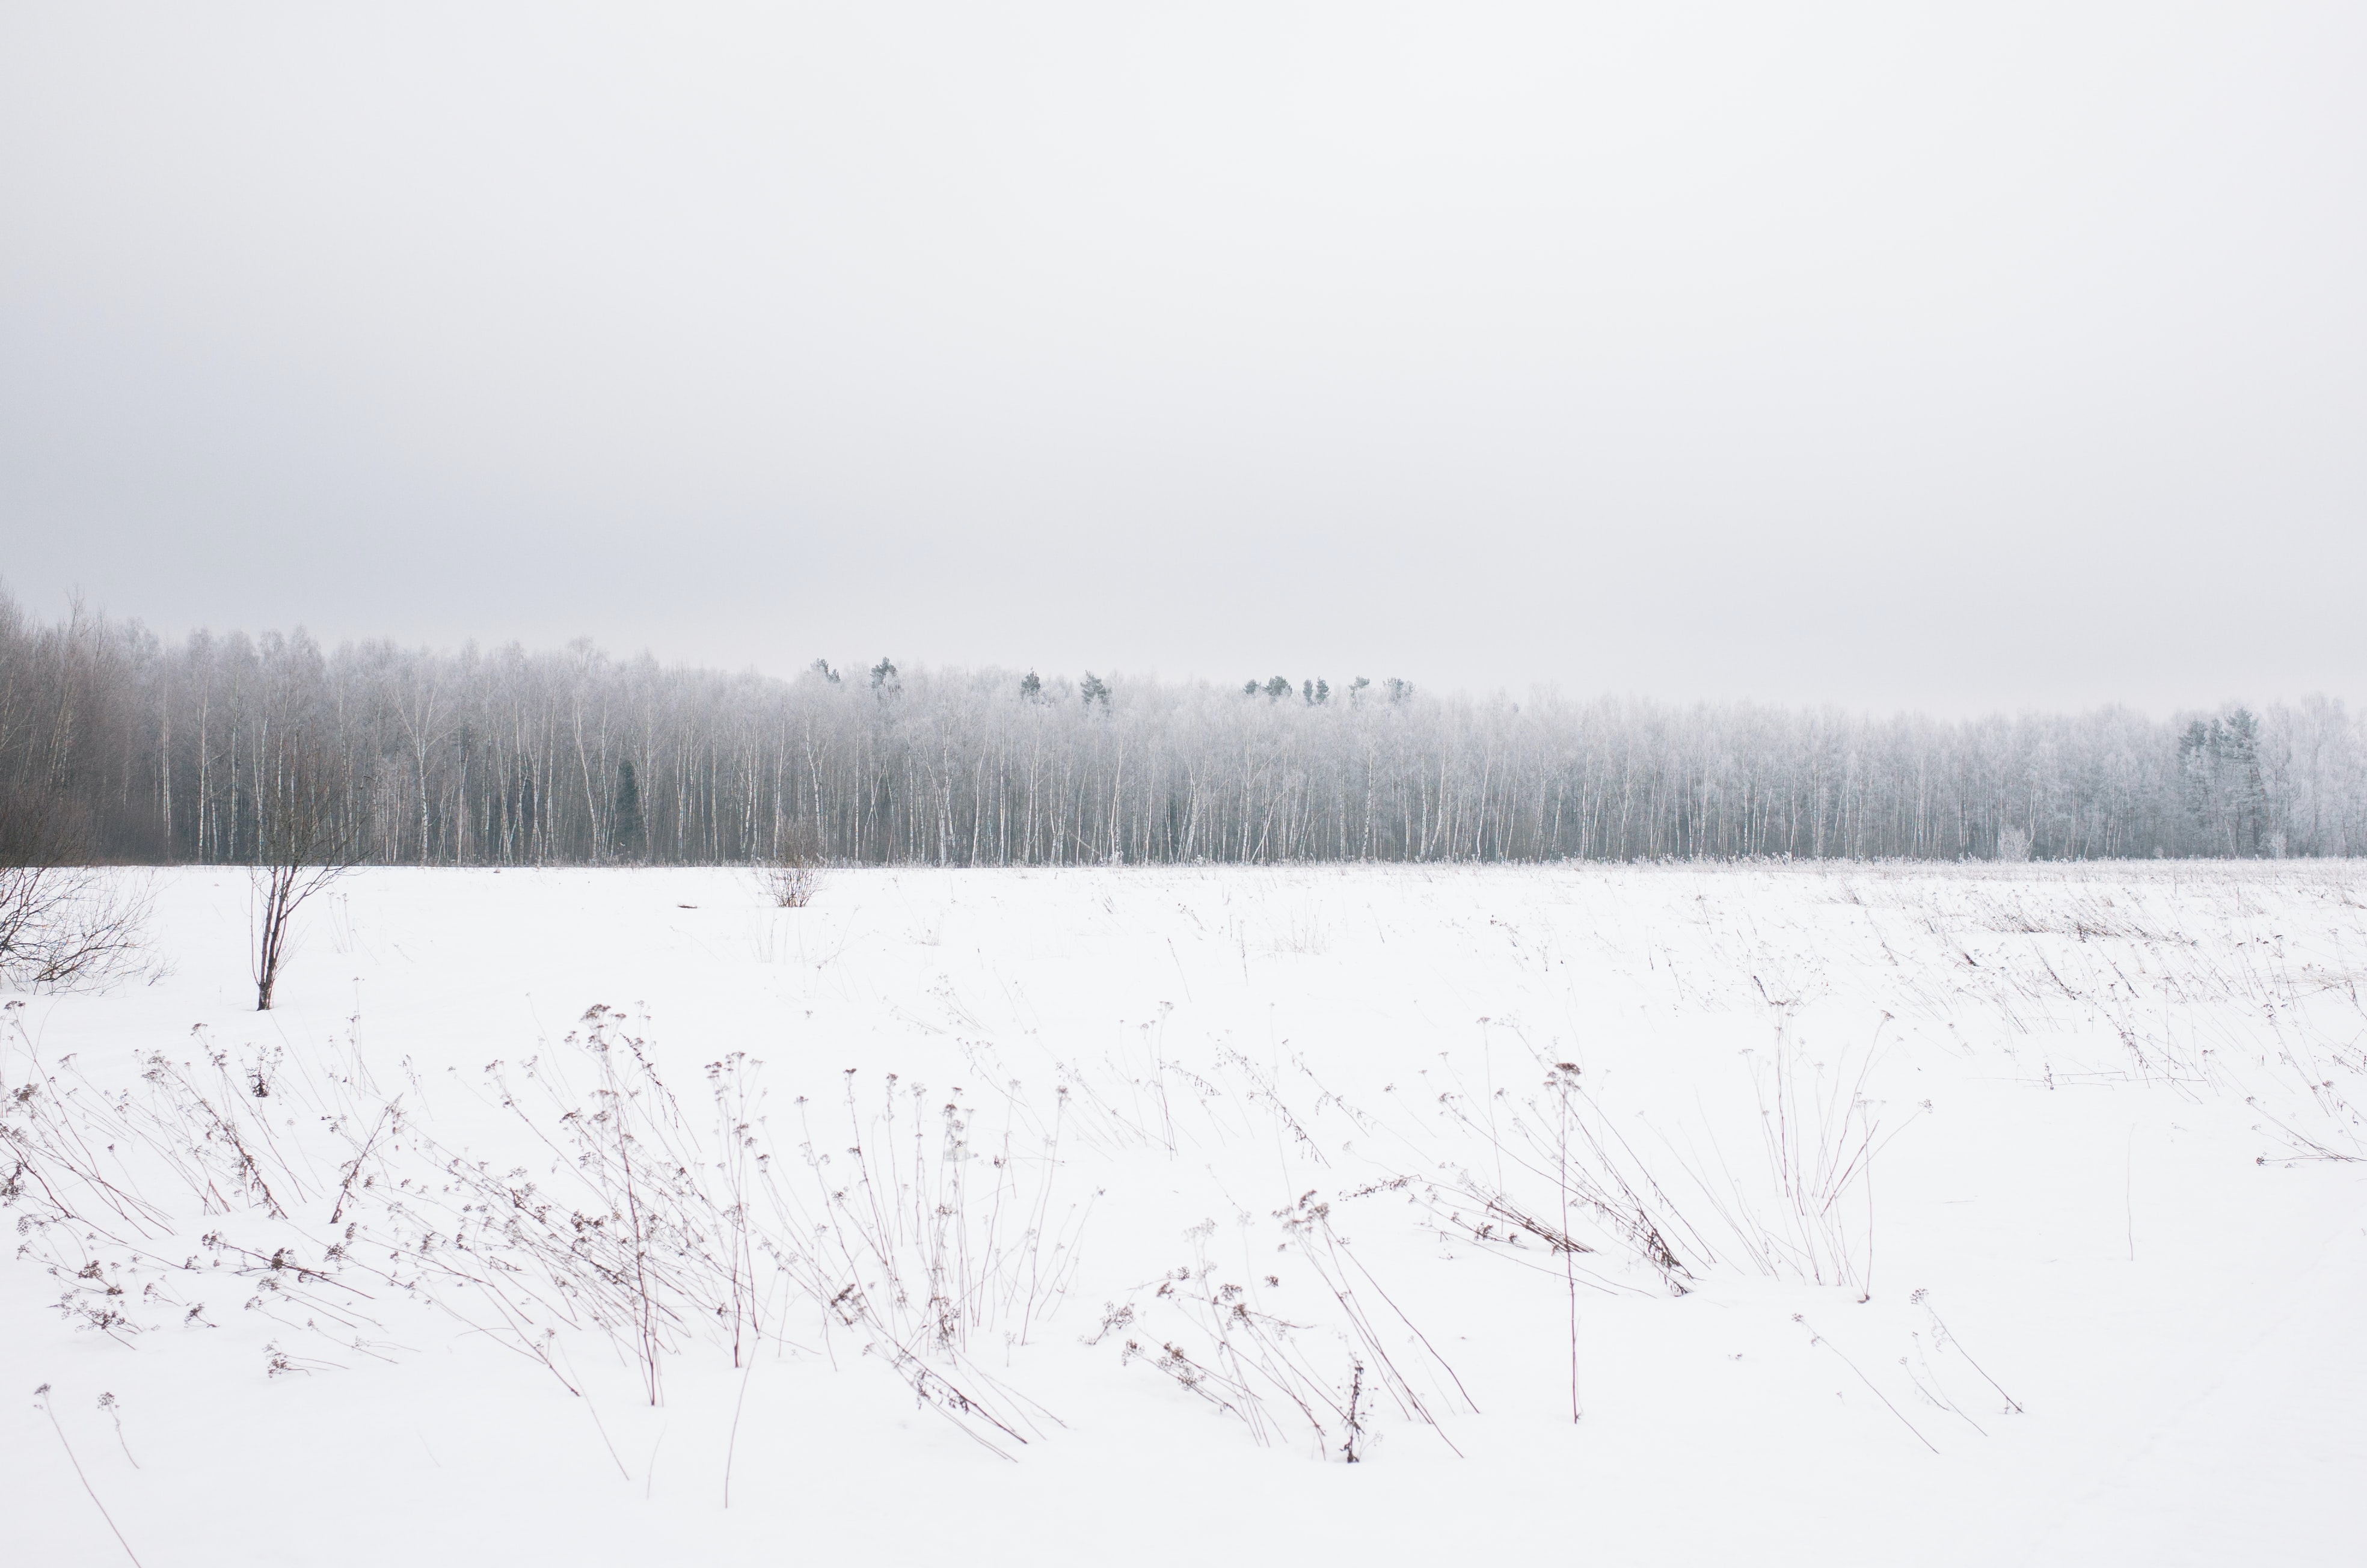 Snowy open land with rows of trees in Russia